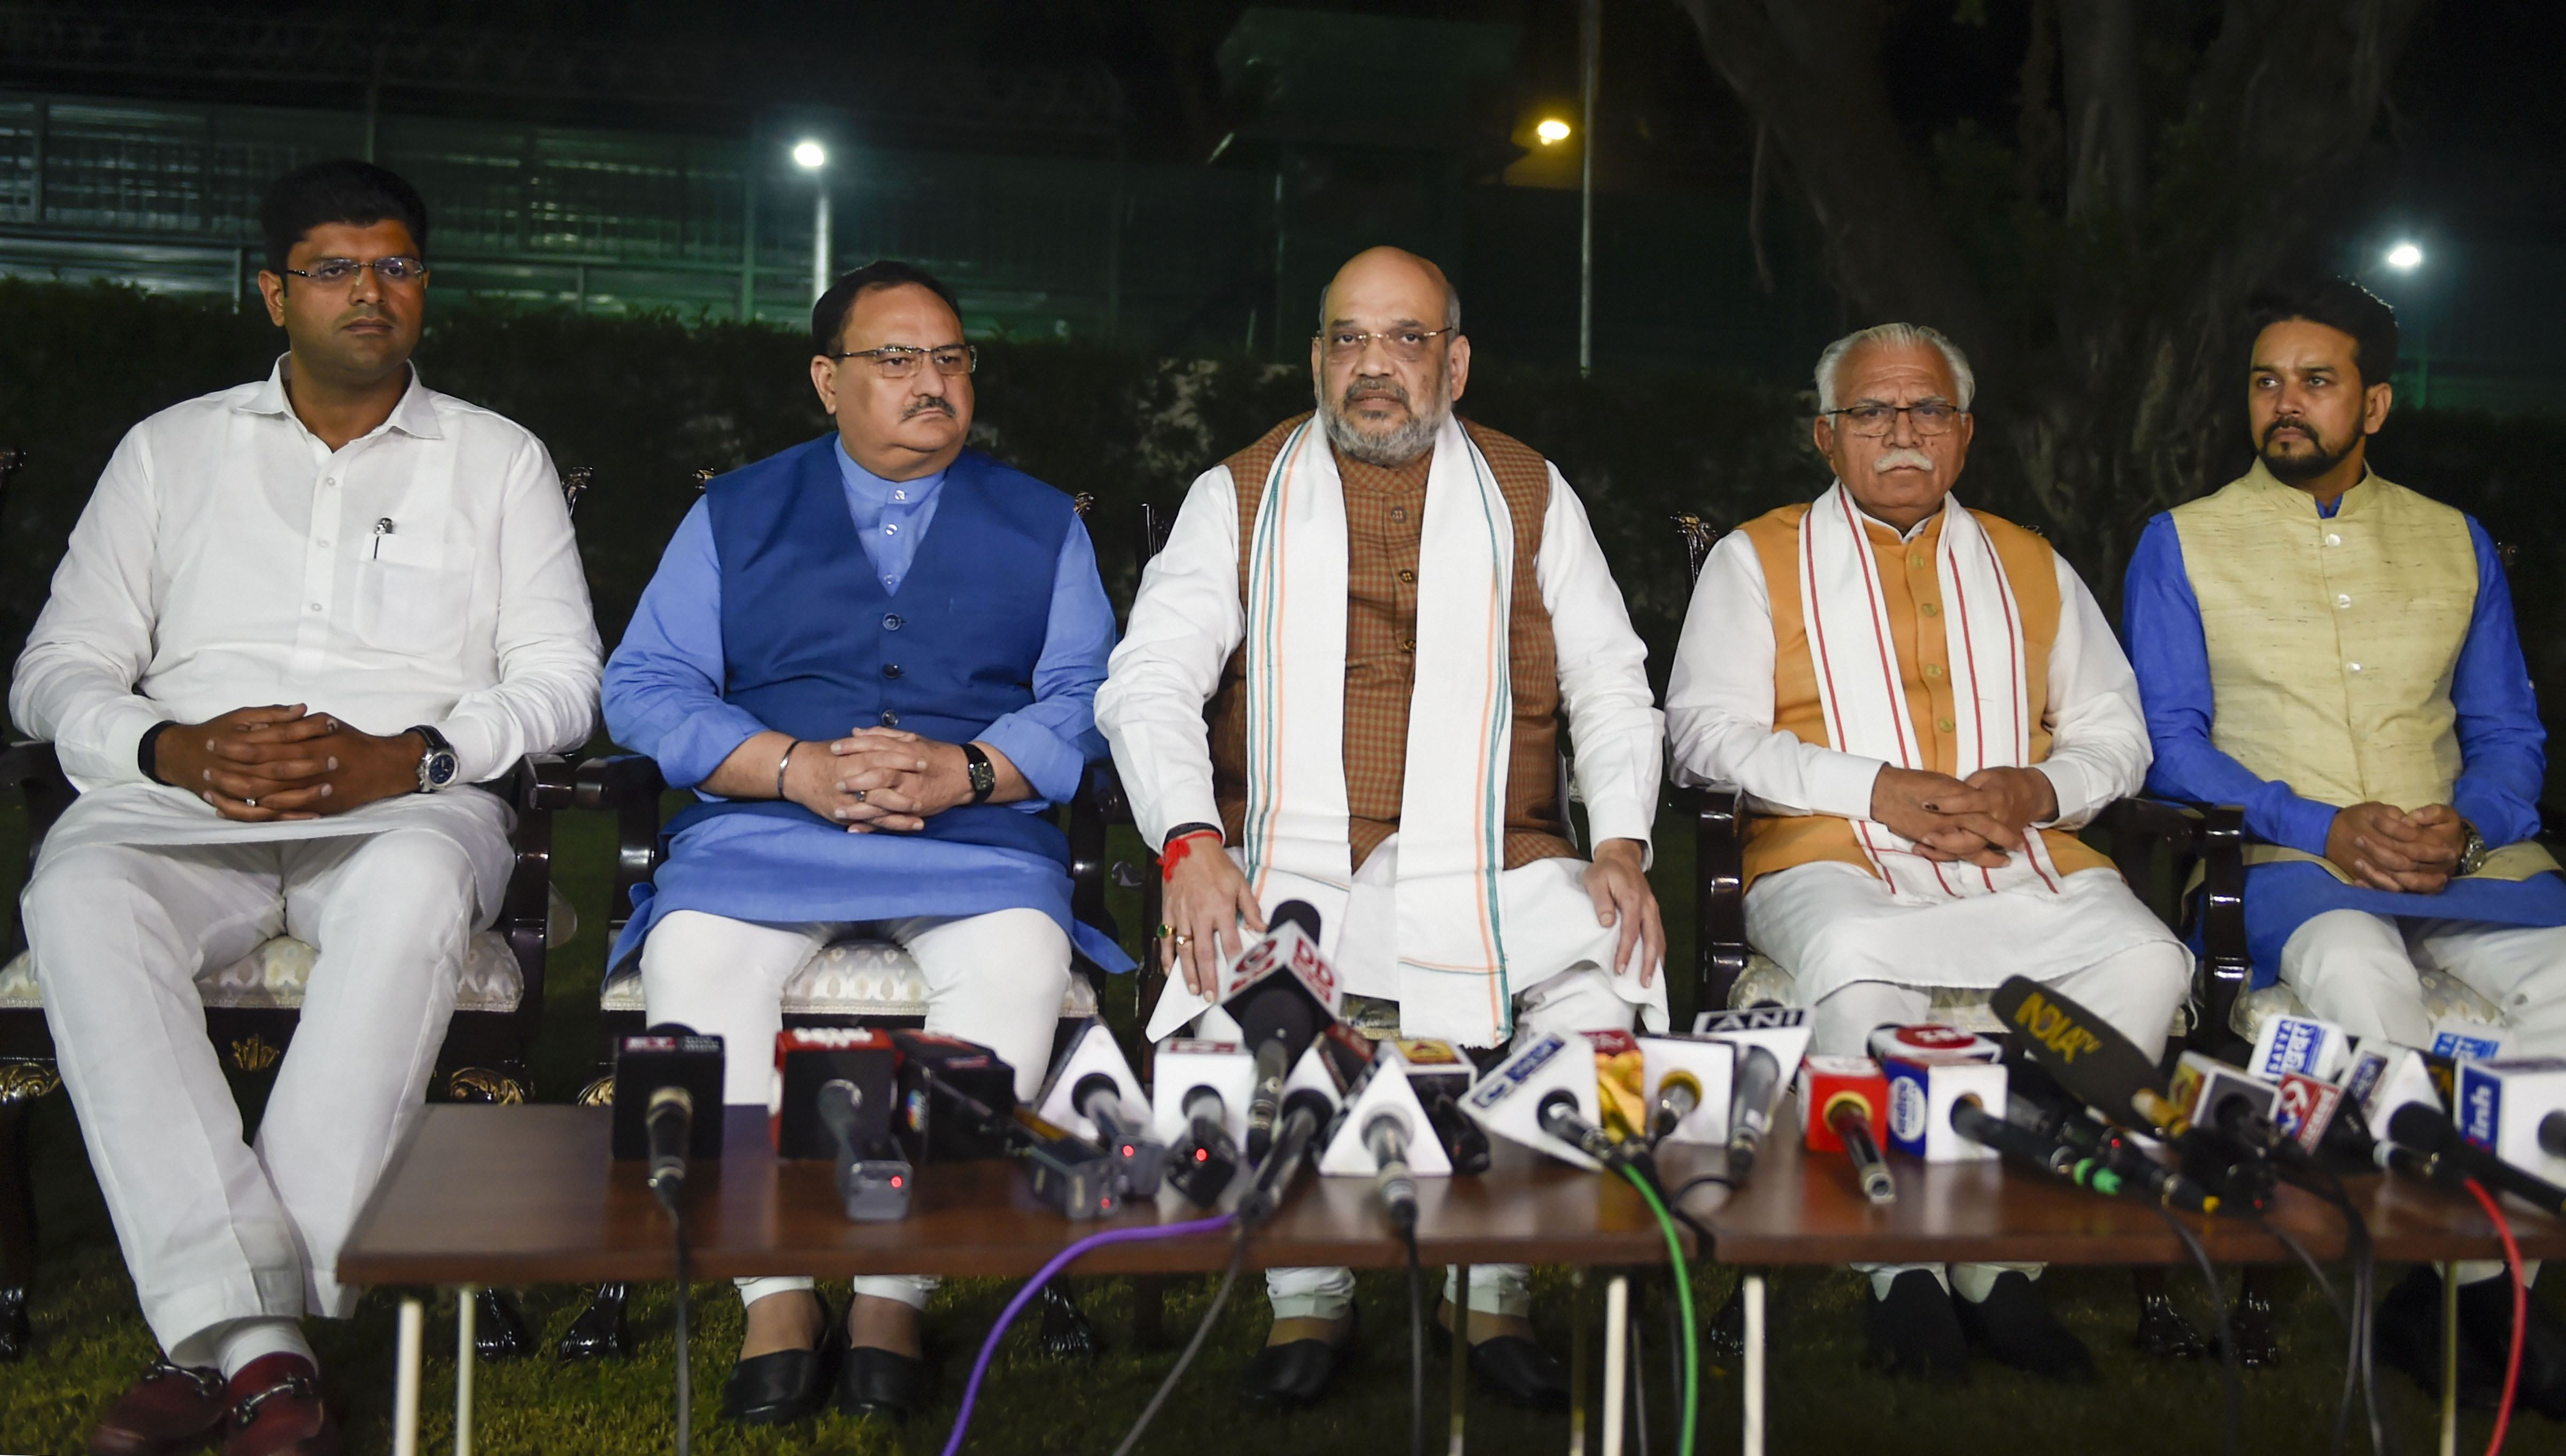 (From left) Dushyant Chautala, JP Nadda, Amit Shah, Manohar Lal Khattar and Anurag Thakur at the news conference in New Delhi on October 25